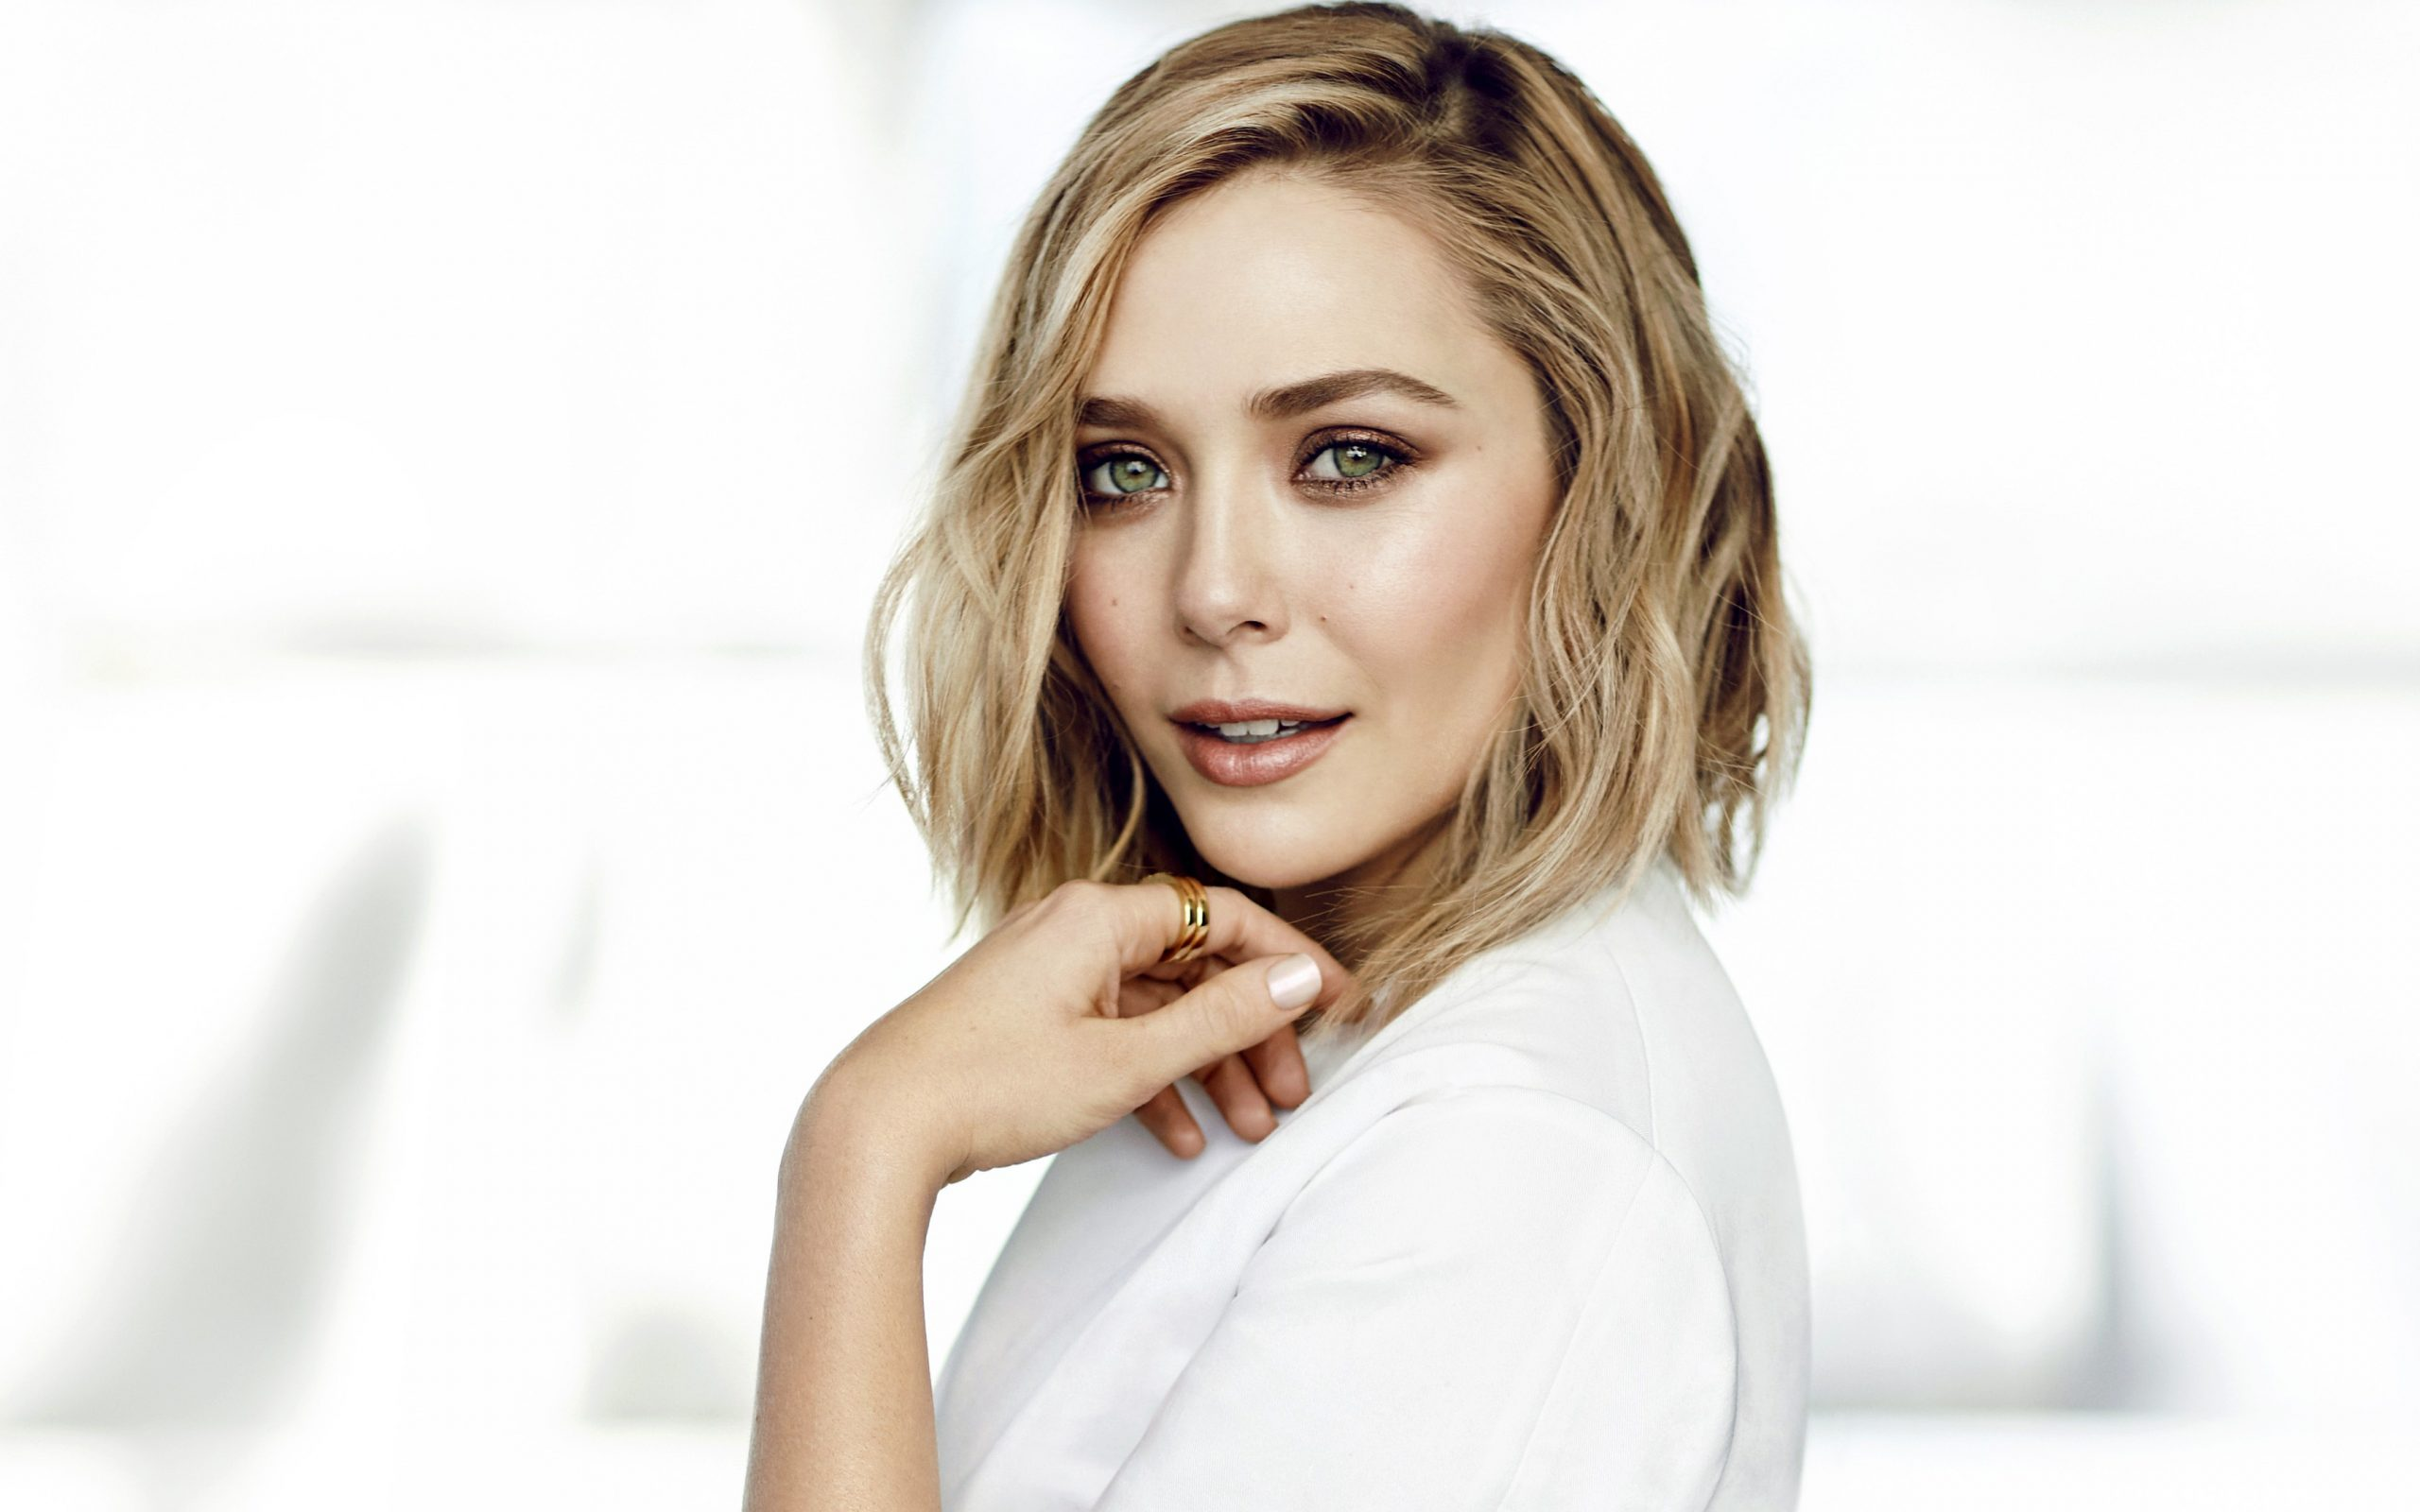 Elizabeth Olsen Wallpaper 4K HD Wallpaper Background 2560x1600